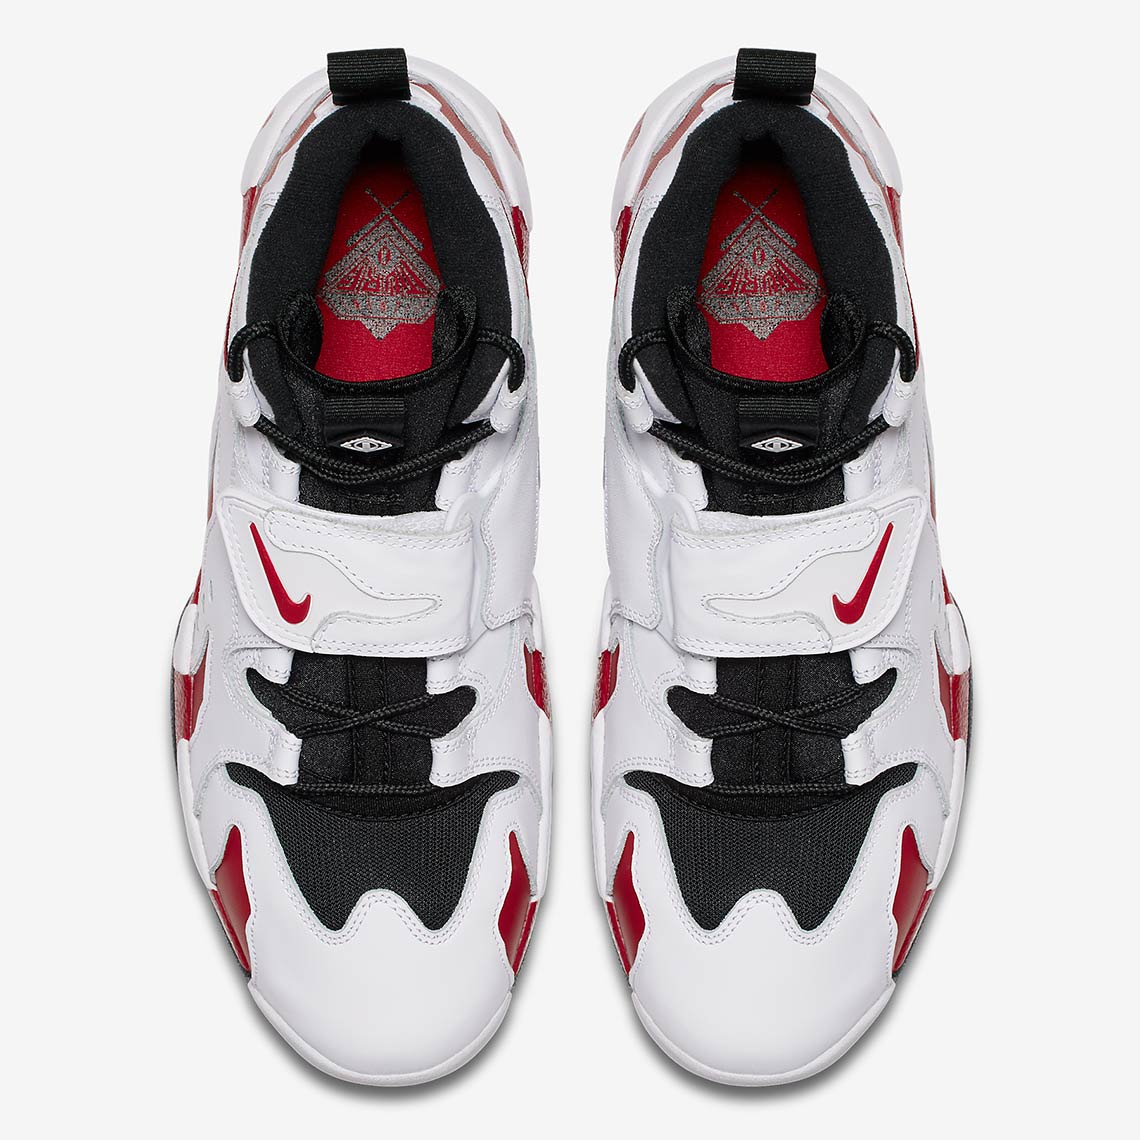 Nike Air DT Max '96. Available now on Nike.com $140. Color: White/Red-Black